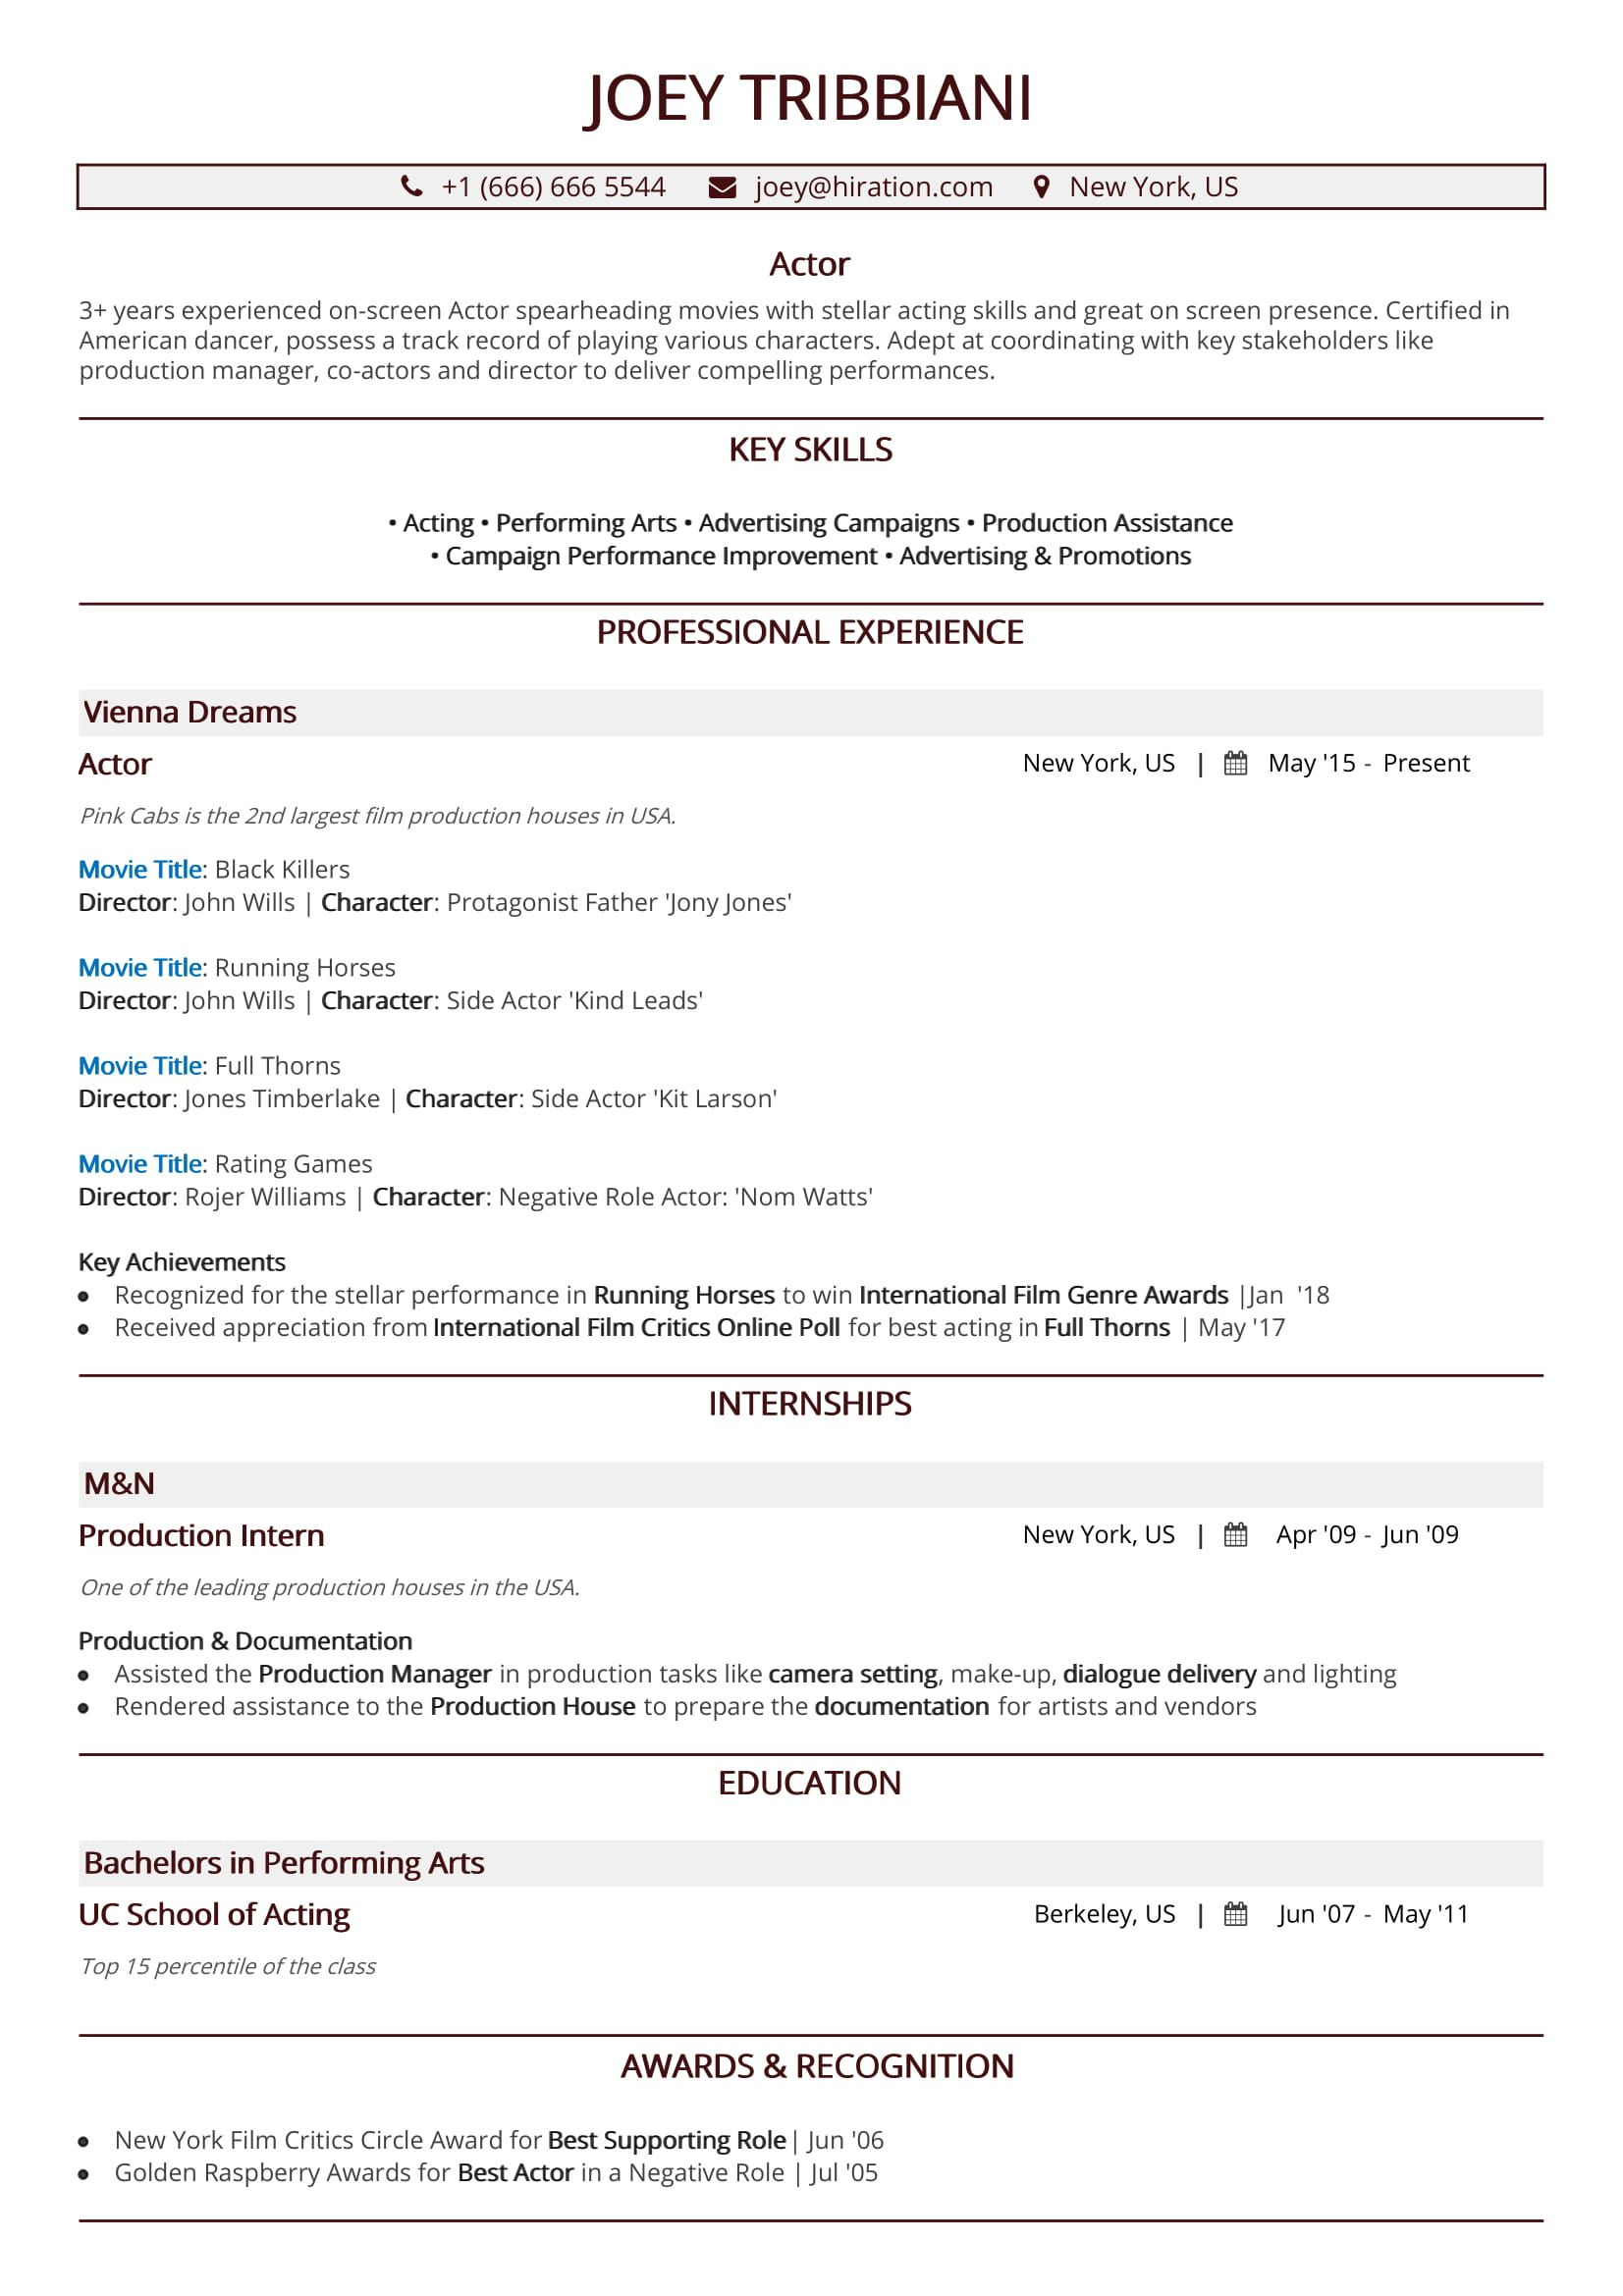 Acting Resume in 2019: A 10-Step Guide to Actor Resume [With Samples]